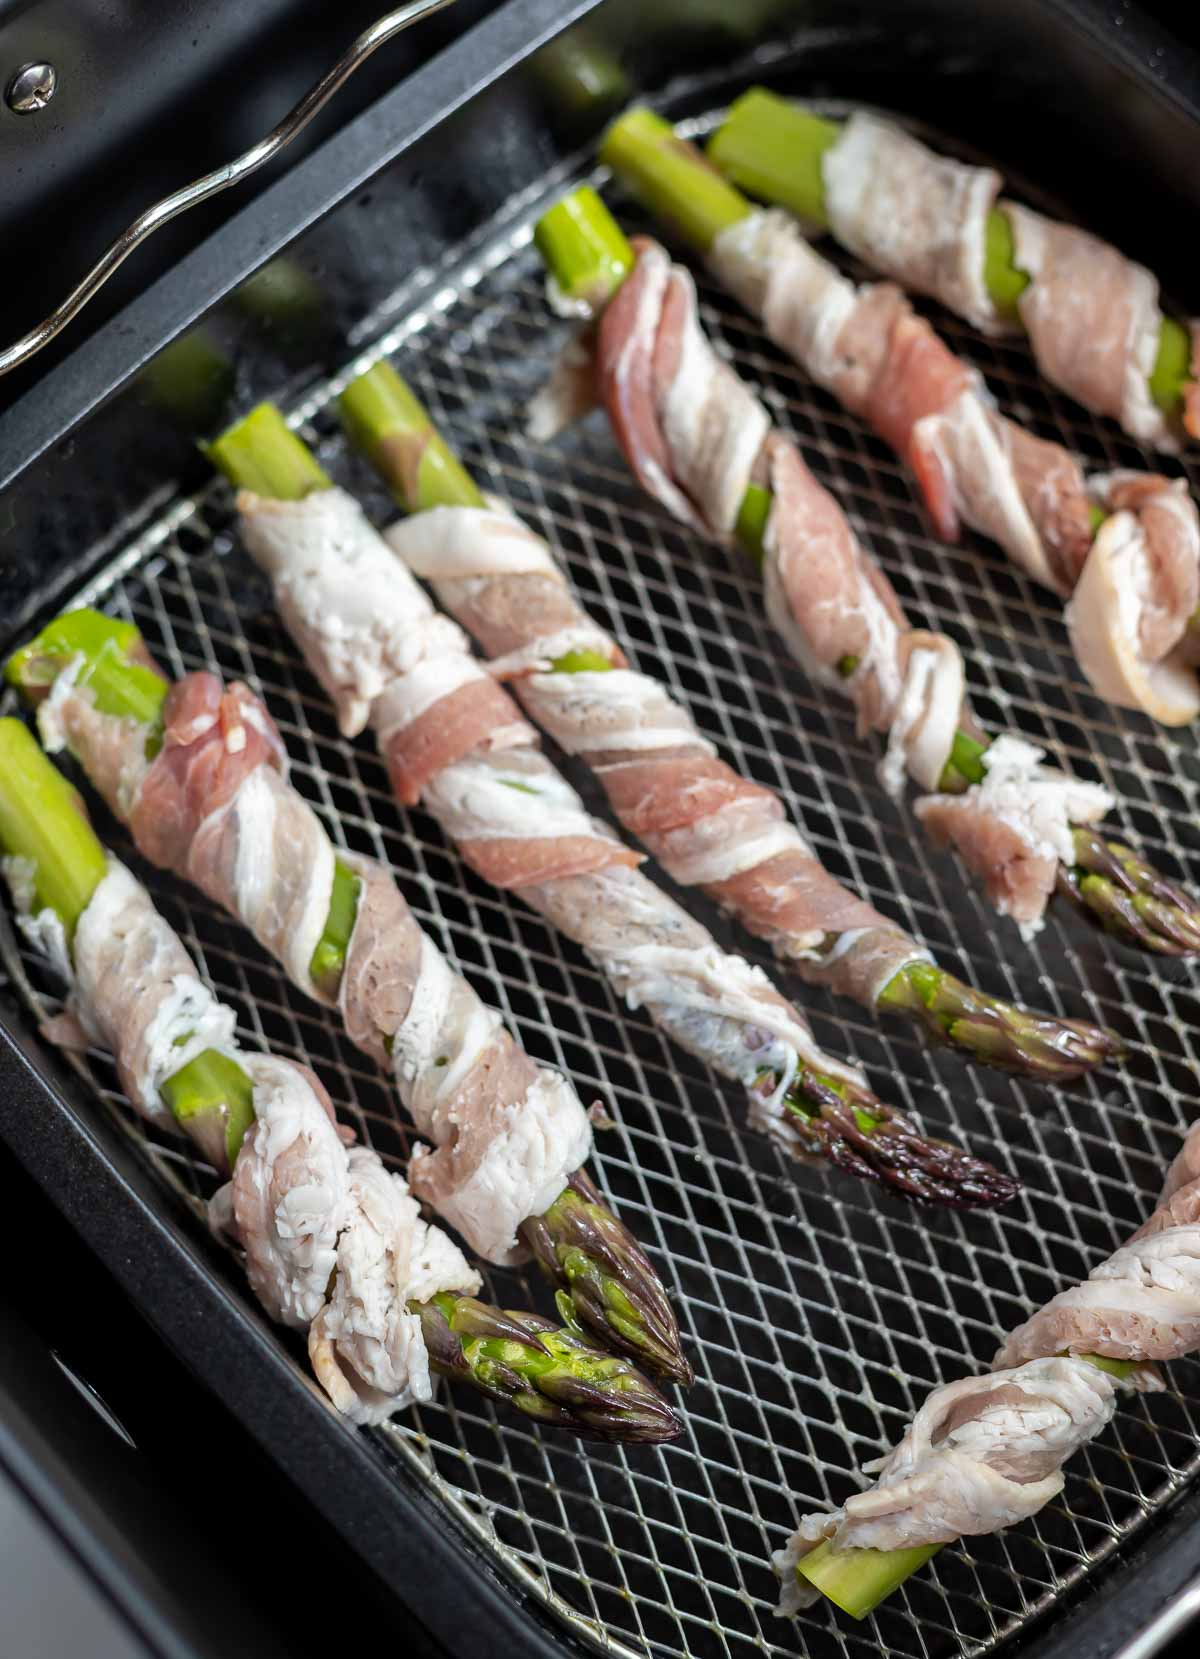 raw bacon wrapped asparagus in basket